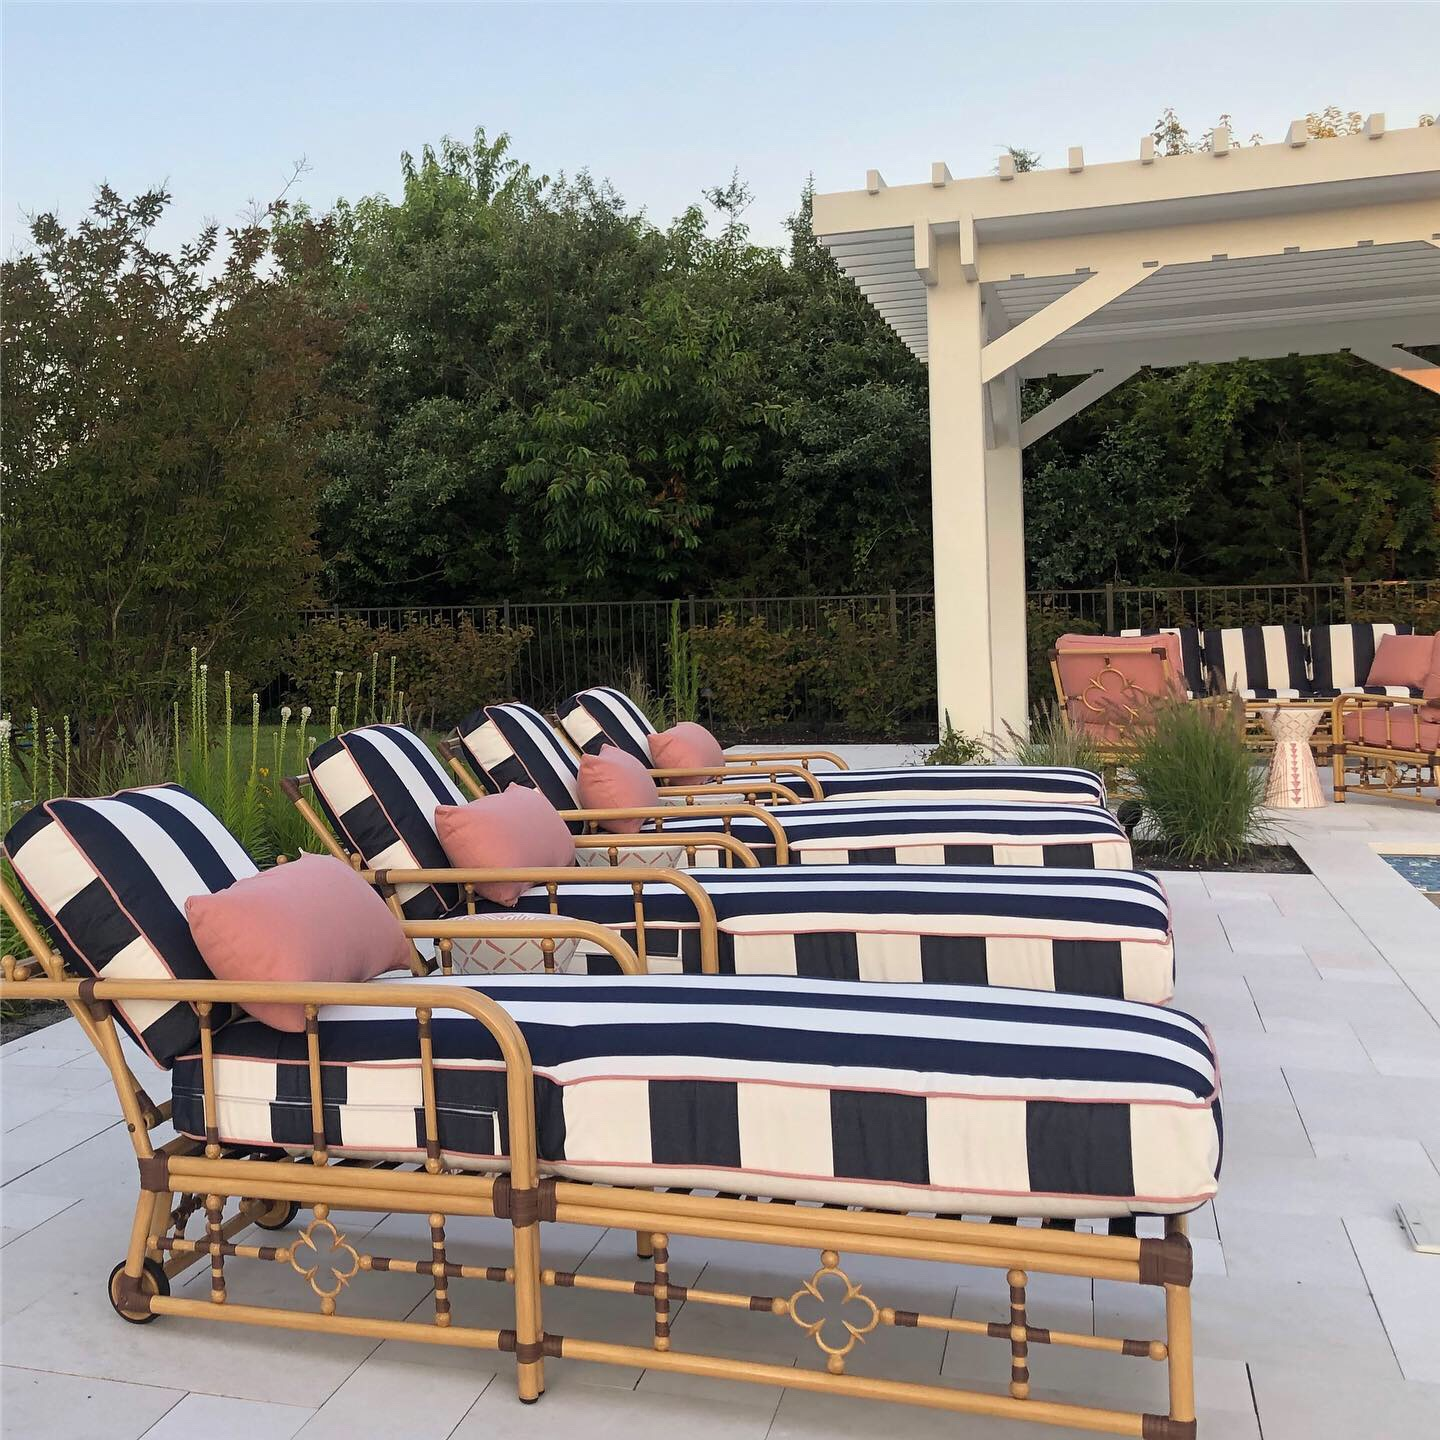 Mimi By Celerie Kemble Chaise Lounge The Wickery Outdoor